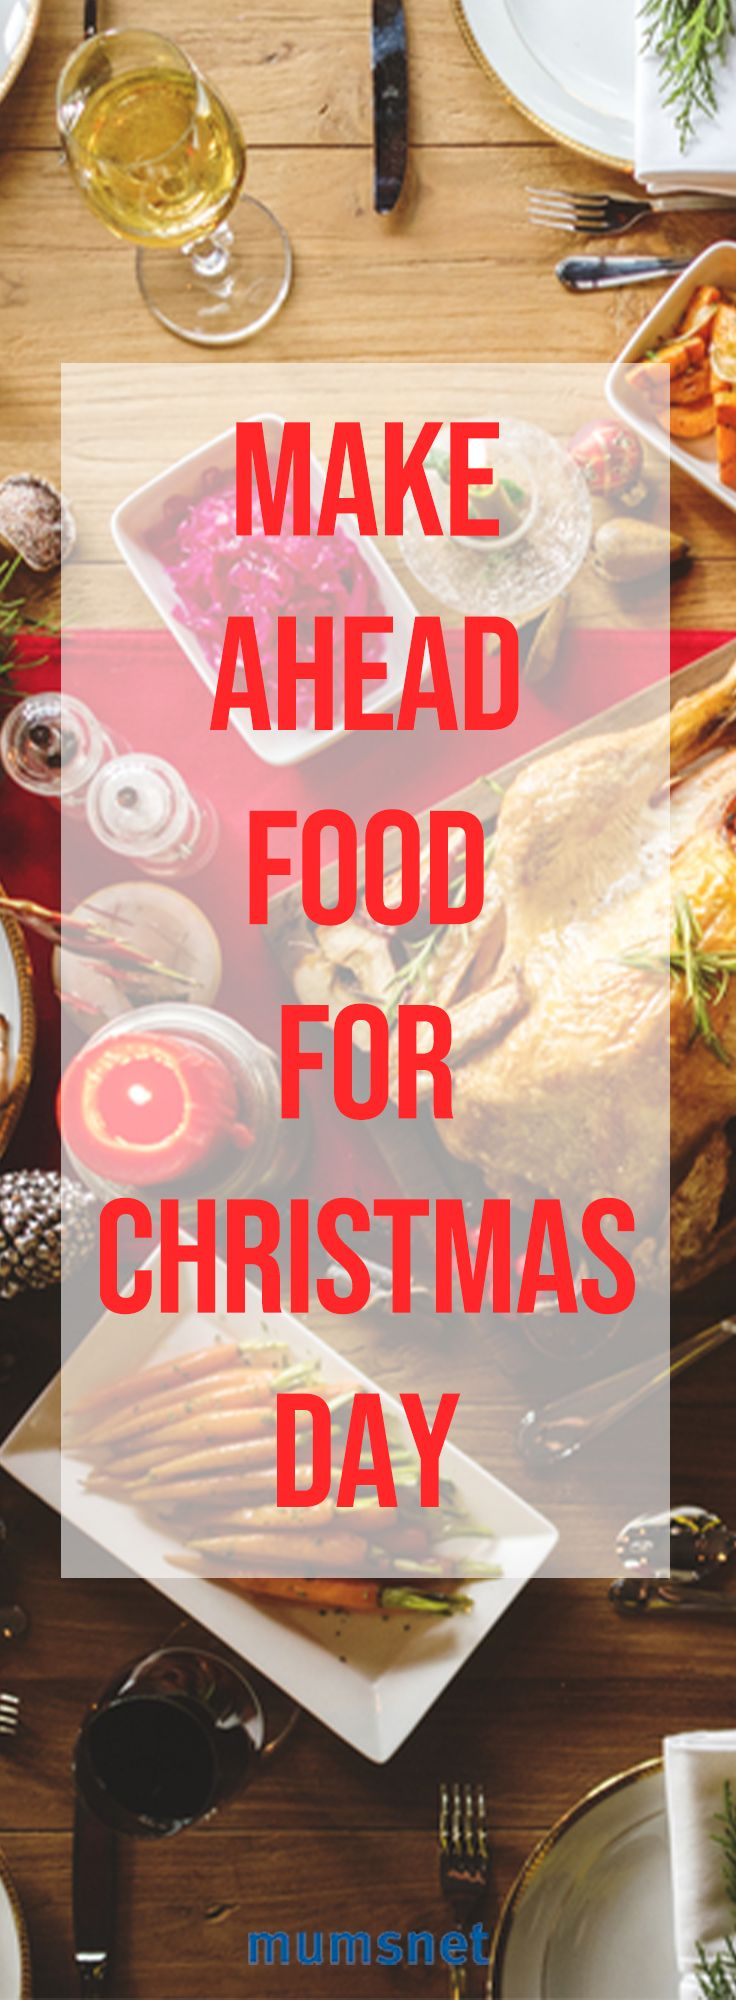 Wouldn't you rather be spending Christmas Day exchanging gifts and treats with the family? Follow these quick and easy recipes and tips for a stress-free Christmas Dinner by preparing ahead. It might even leave you time for appetizers and dessert! Party on!